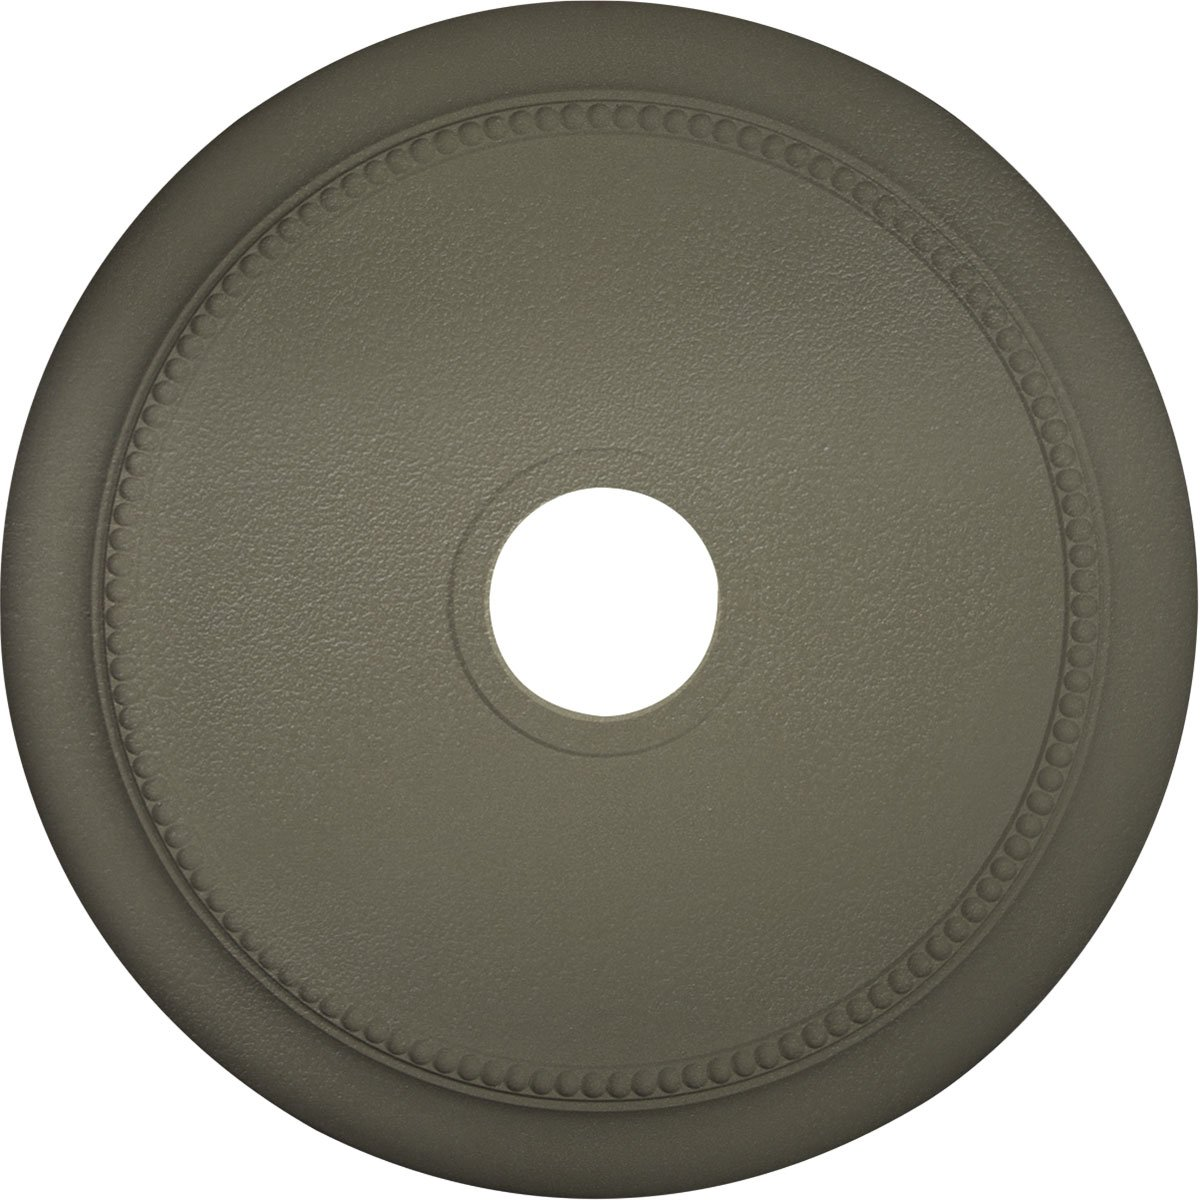 Ekena Millwork CM24CRSSF 24 1/8'' OD x 4 3/8'' ID x 2 1/4'' P Crendon Ceiling Medallion fits Canopies up to 4, Spartan Stone